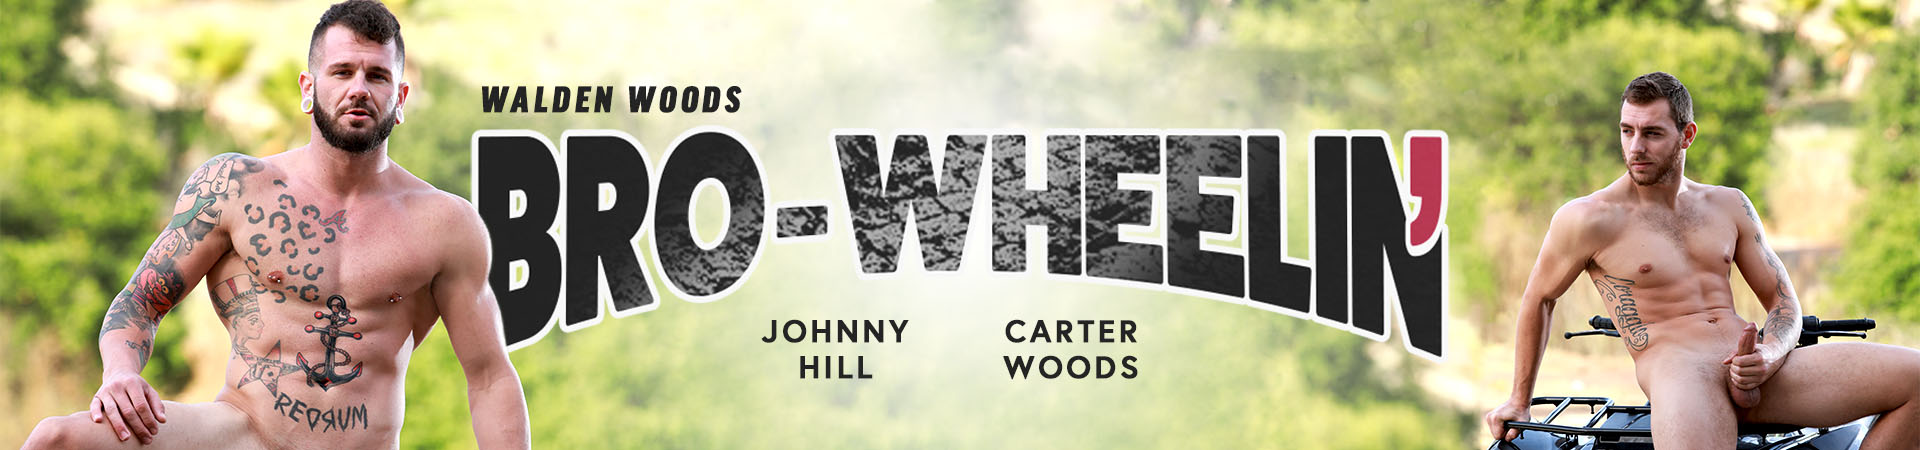 Bro-Wheelin' Featuring Carter Woods and Johnny Hill